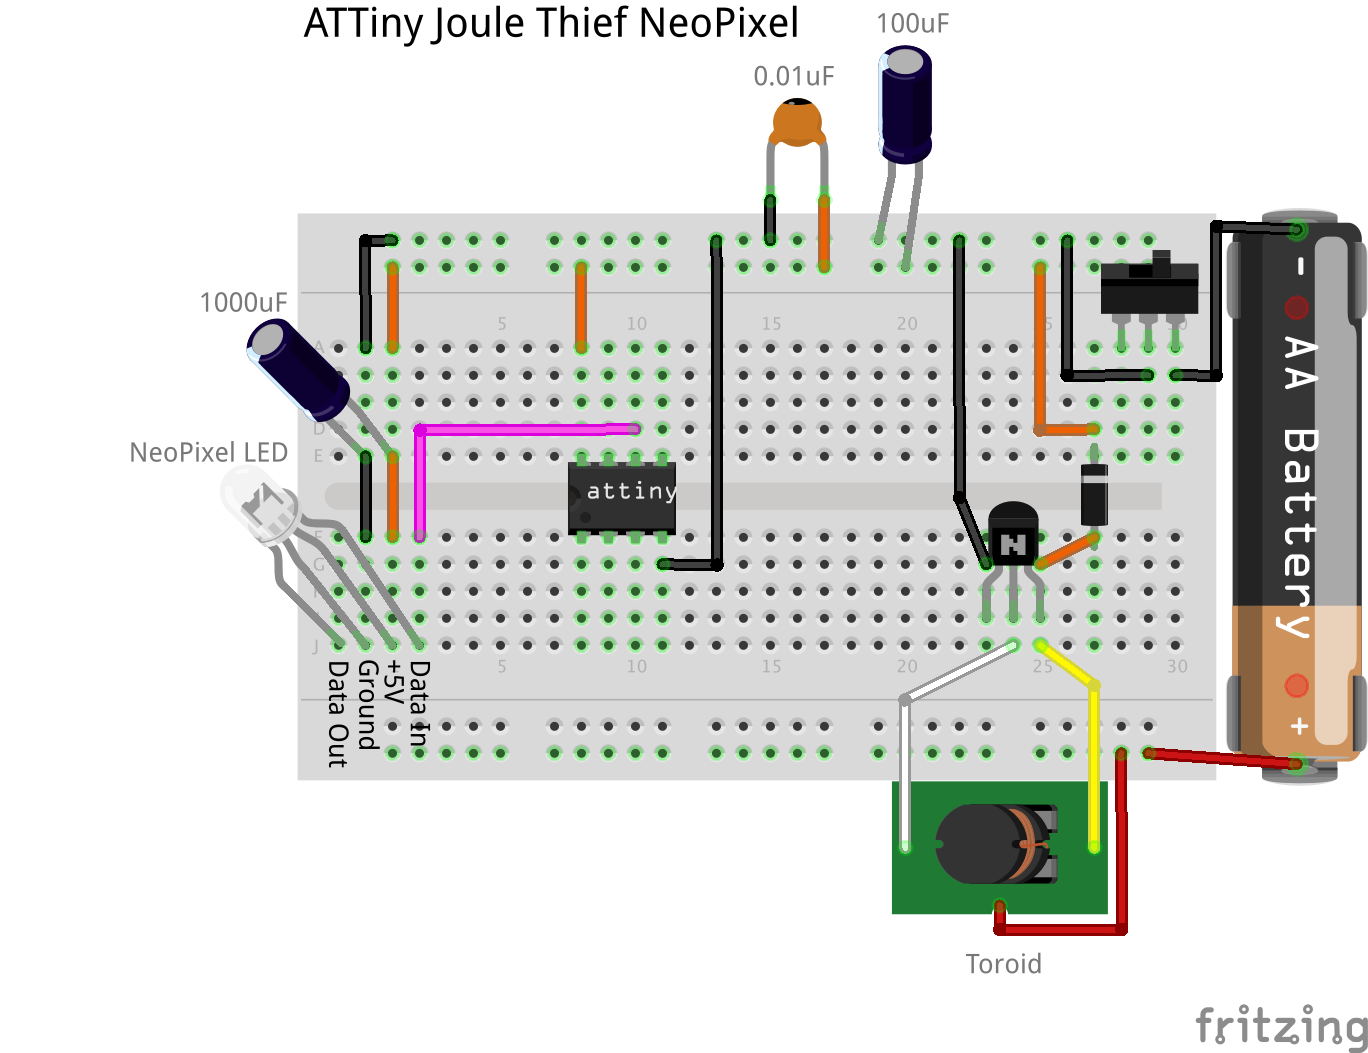 Schematic ATTiny Joule Thief NeoPixel - Use Arduino for ... on joule thief battery, joule thief design, joule thief kit, joule thief boost converter circuit, voltage doubler, joule thief project, joule thief how it works, flyback diode, joule thief motor, led circuit, joule thief box, joule thief charger, electromagnetic shielding, joule thief pcb, joule thief waveform, joule thief power, joule ringer schematic, joule thief resistor,